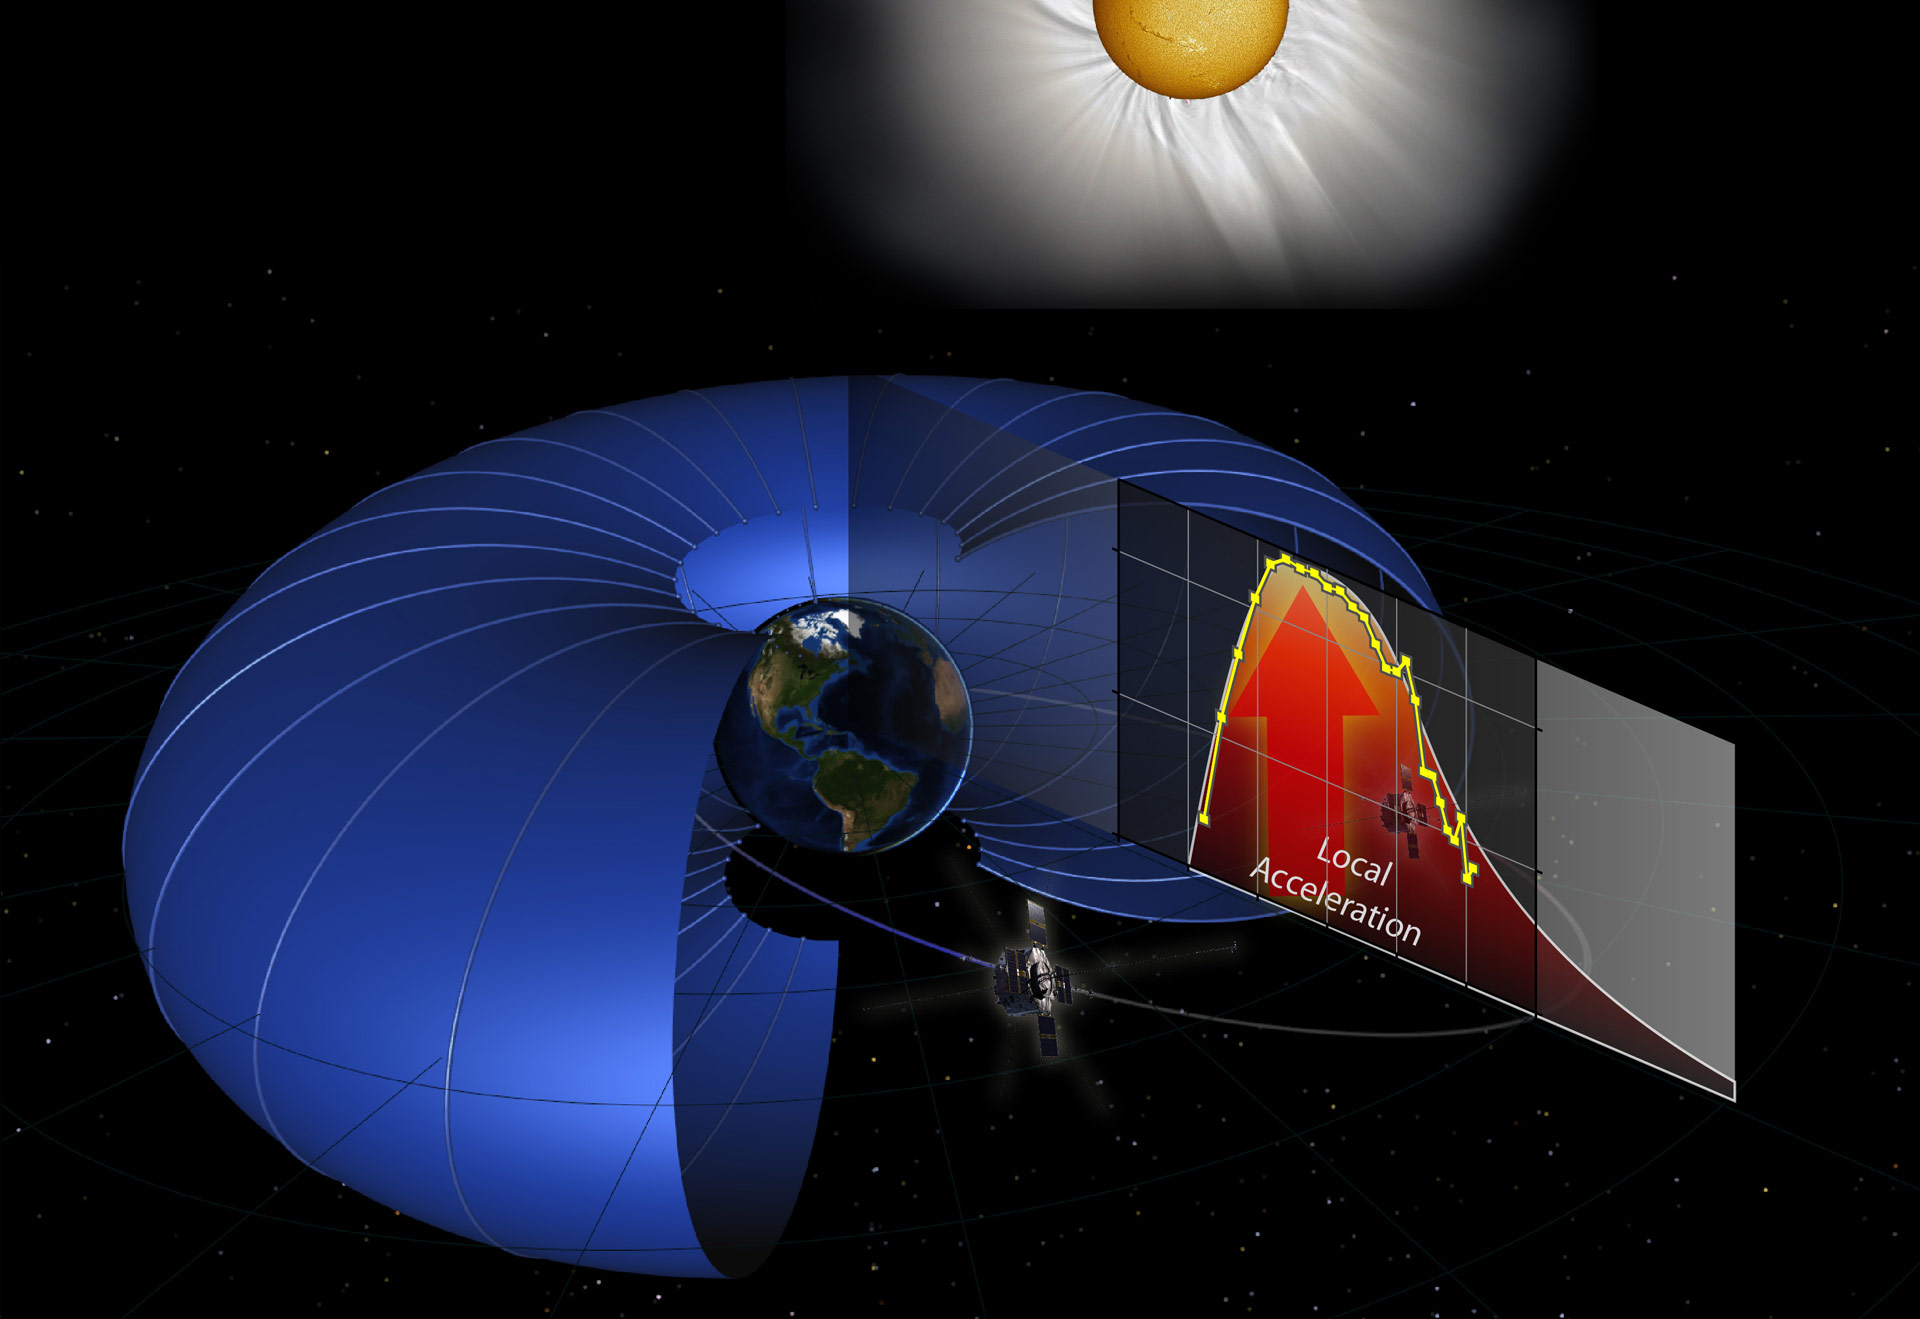 NASA Probes Reveal Source of Particle Acceleration in Van